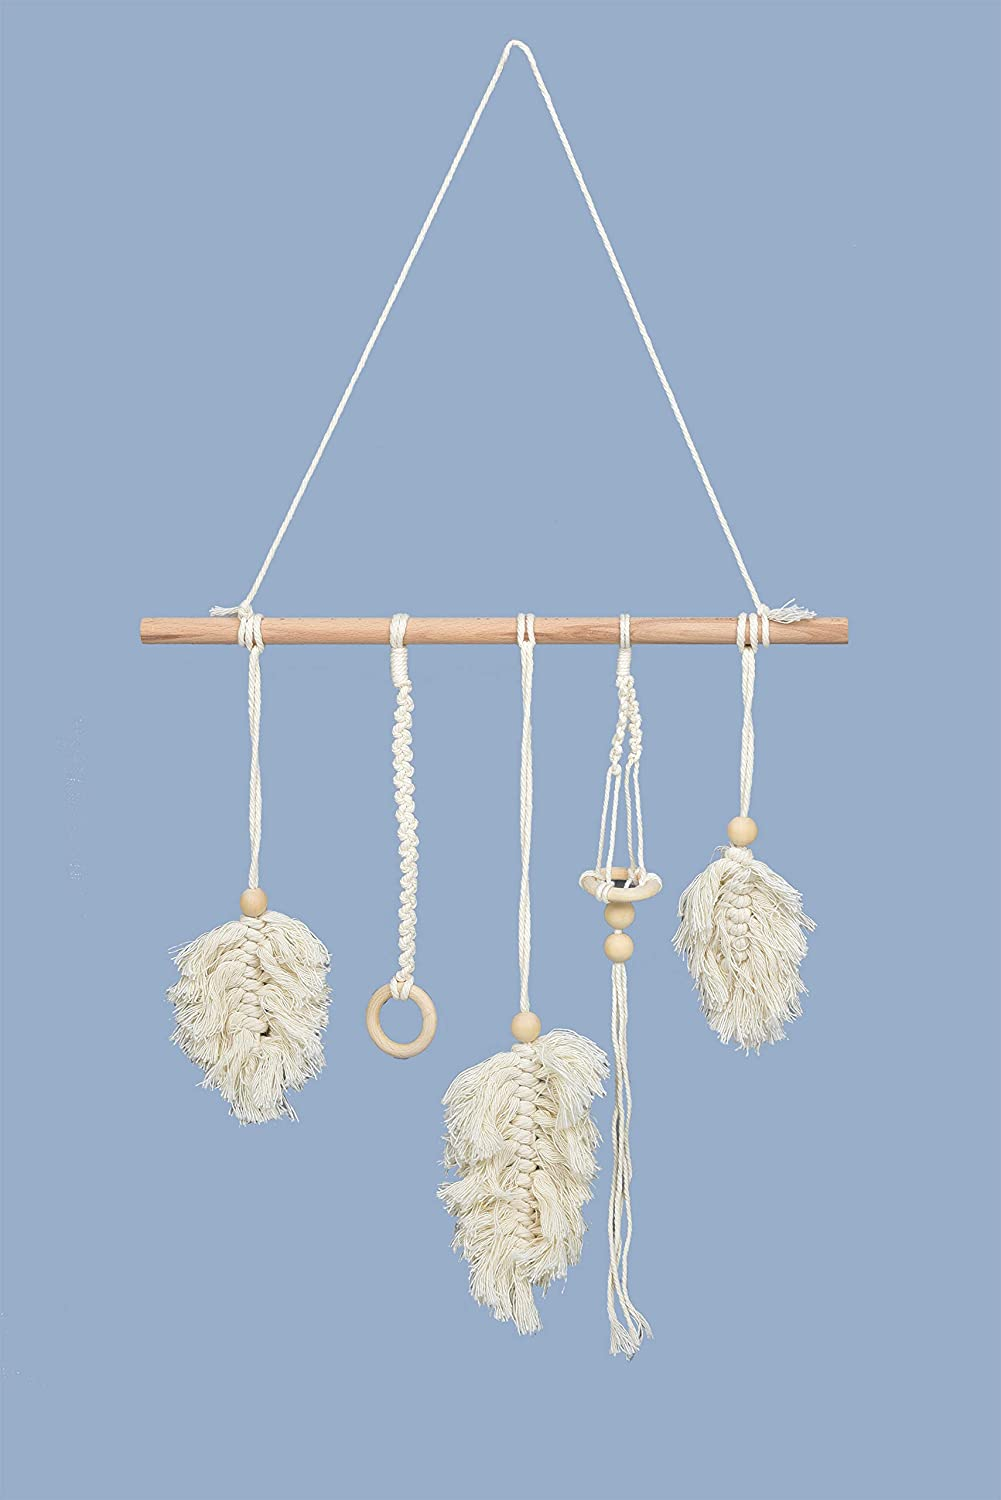 LSKYTOP Leaf Macrame Wall Hanging Ornaments 26